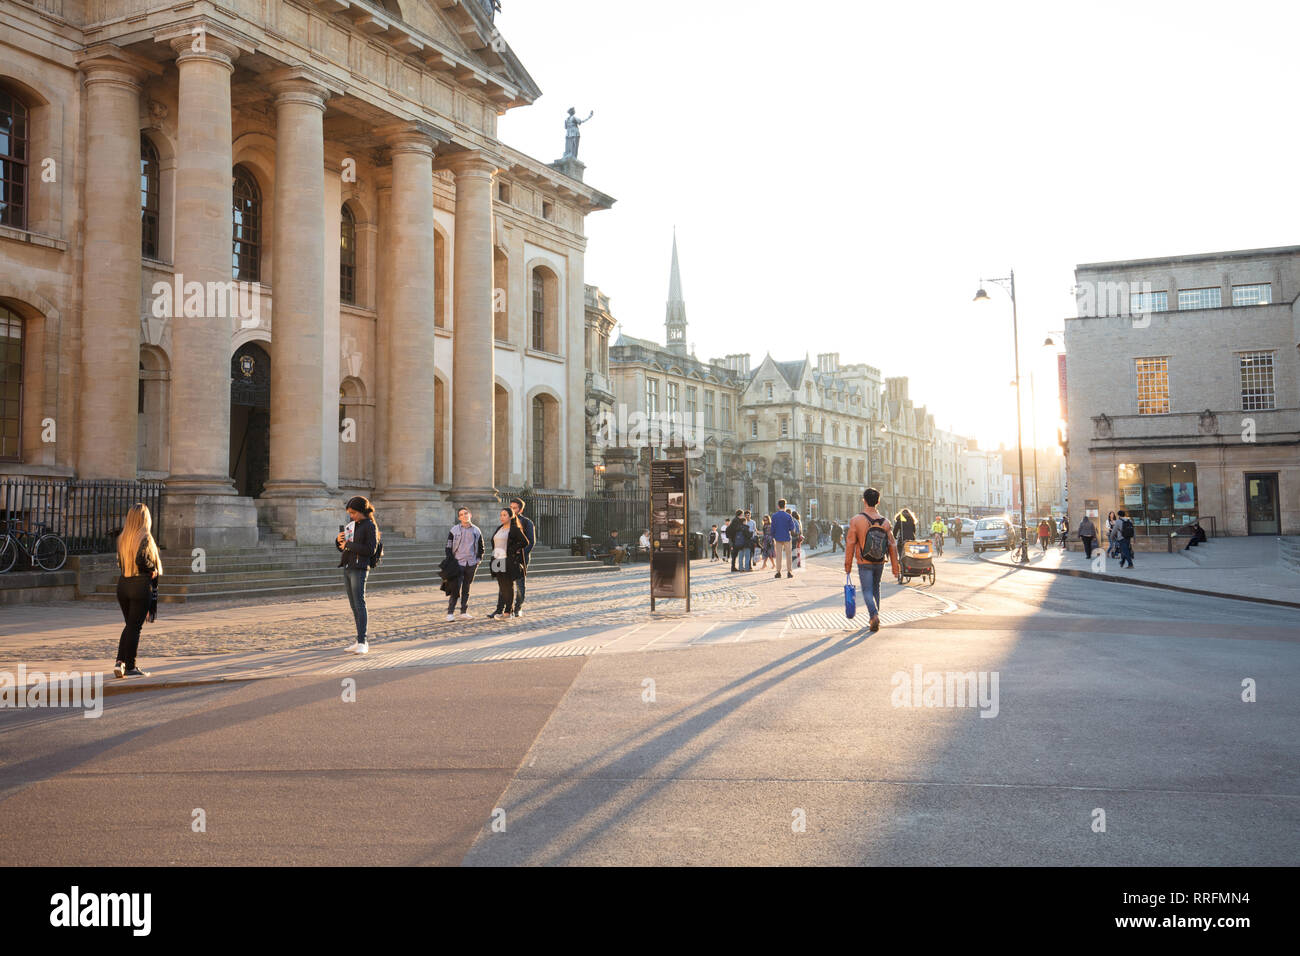 Oxford, UK. 25th February, 2019. Students and visitors enjoy the late afternoon sun on the streets of Oxford, UK, on this warm spring like winter day in February. Credit: Joe Kuis /Alamy Live News - Stock Image